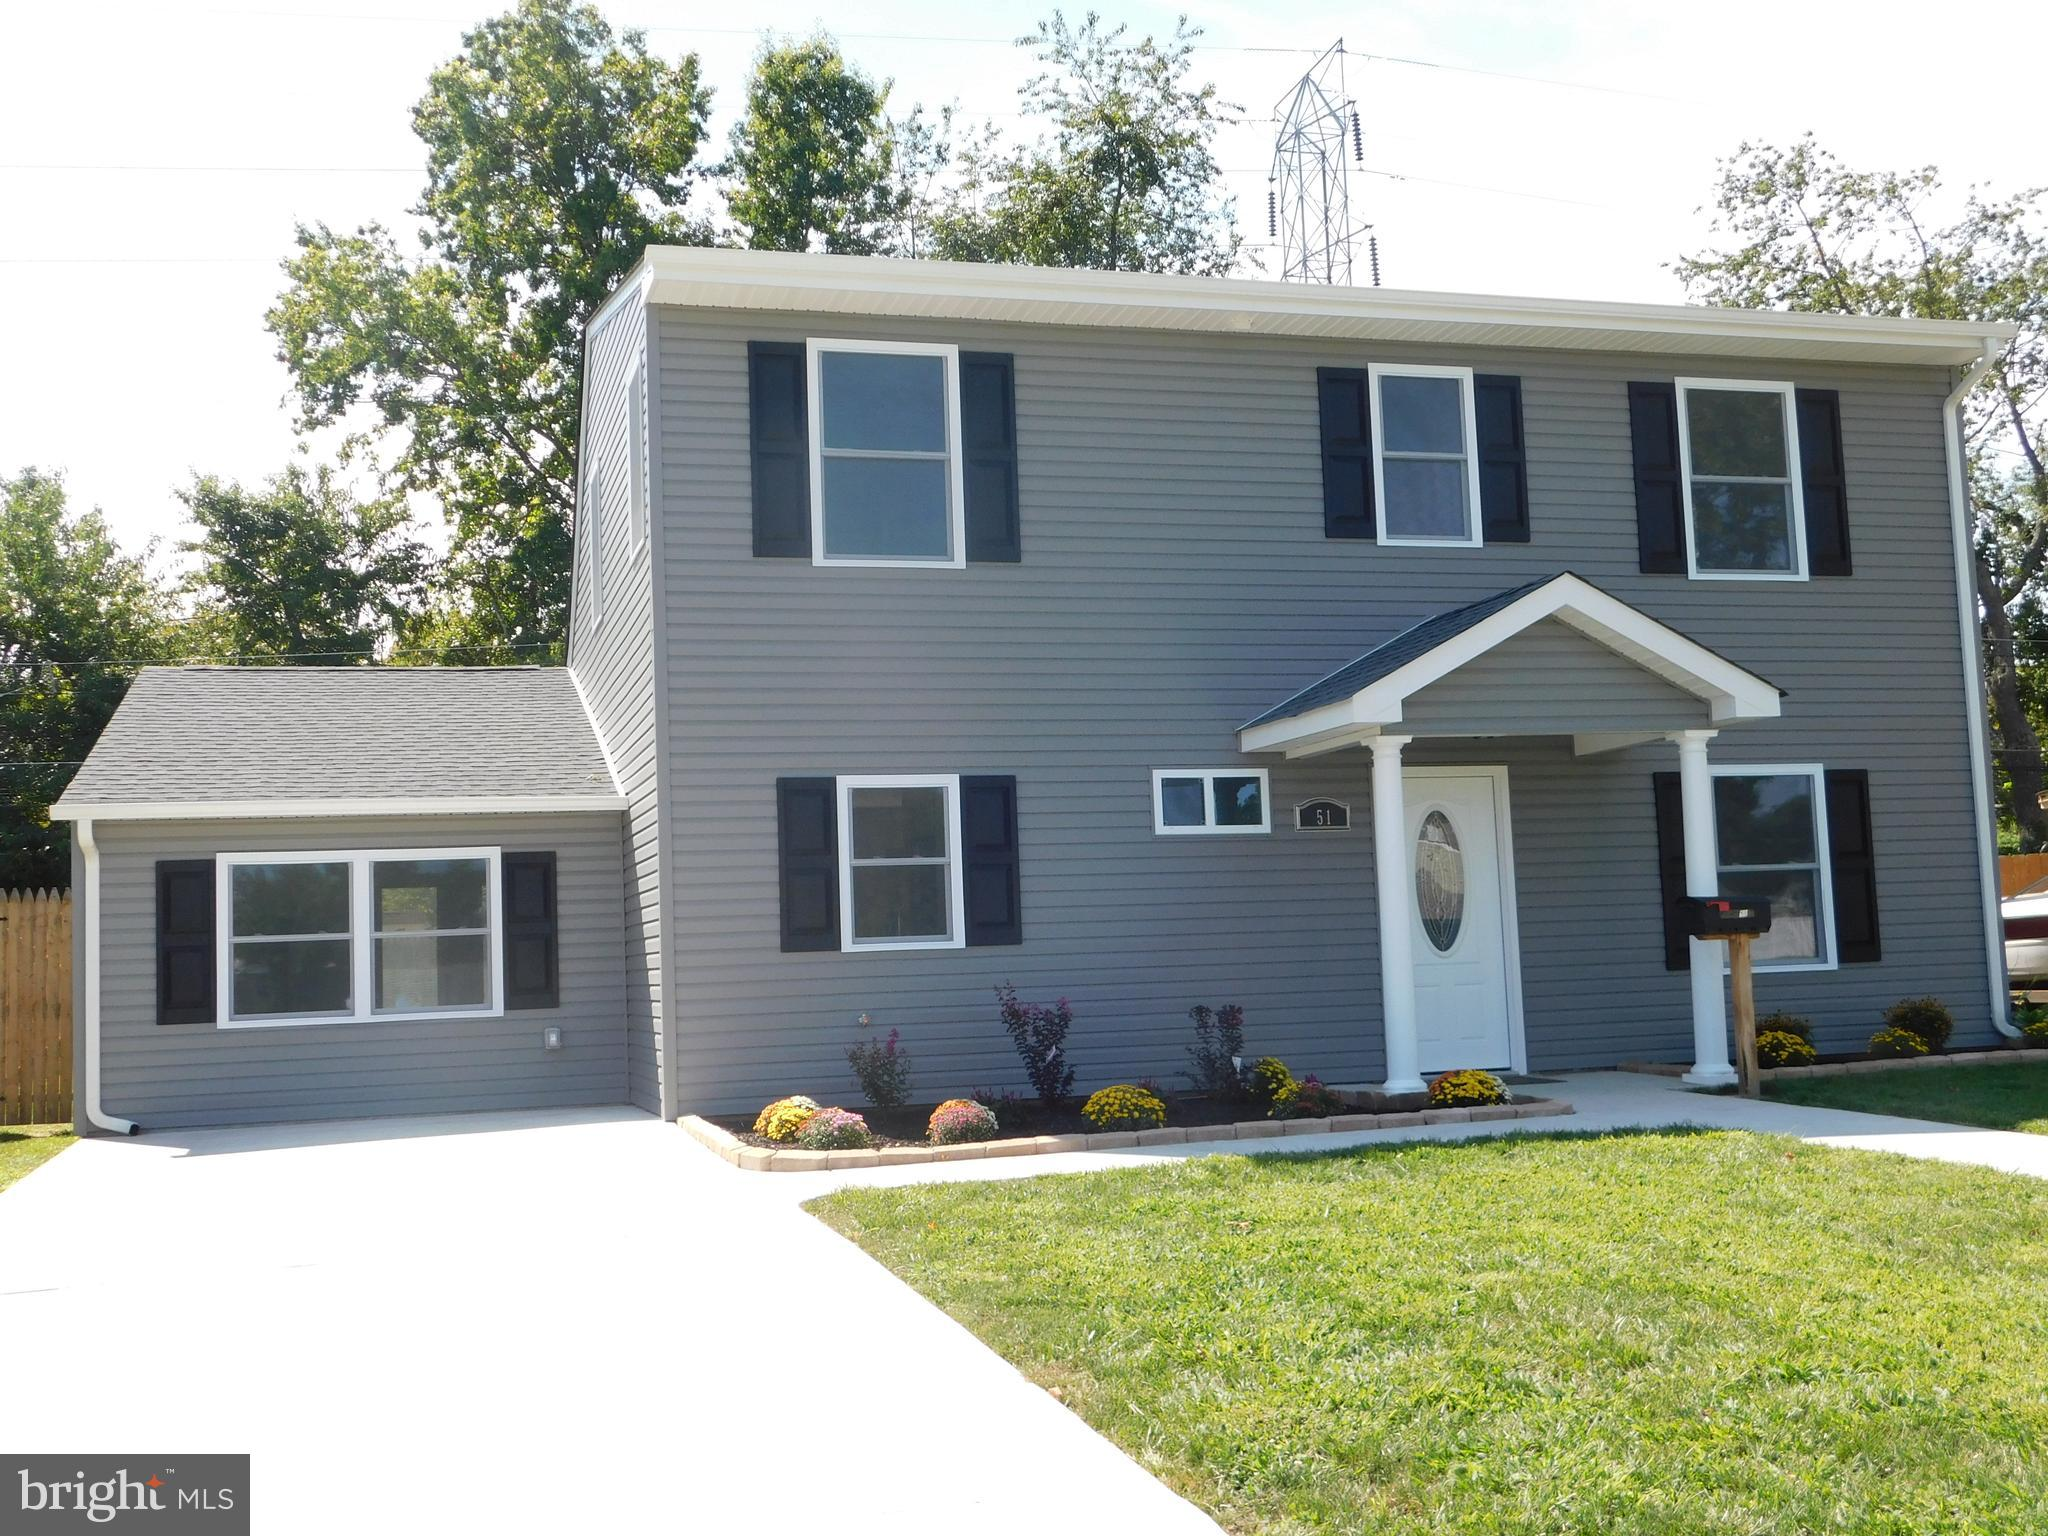 51 NEW SCHOOL LANE, LEVITTOWN, PA 19054